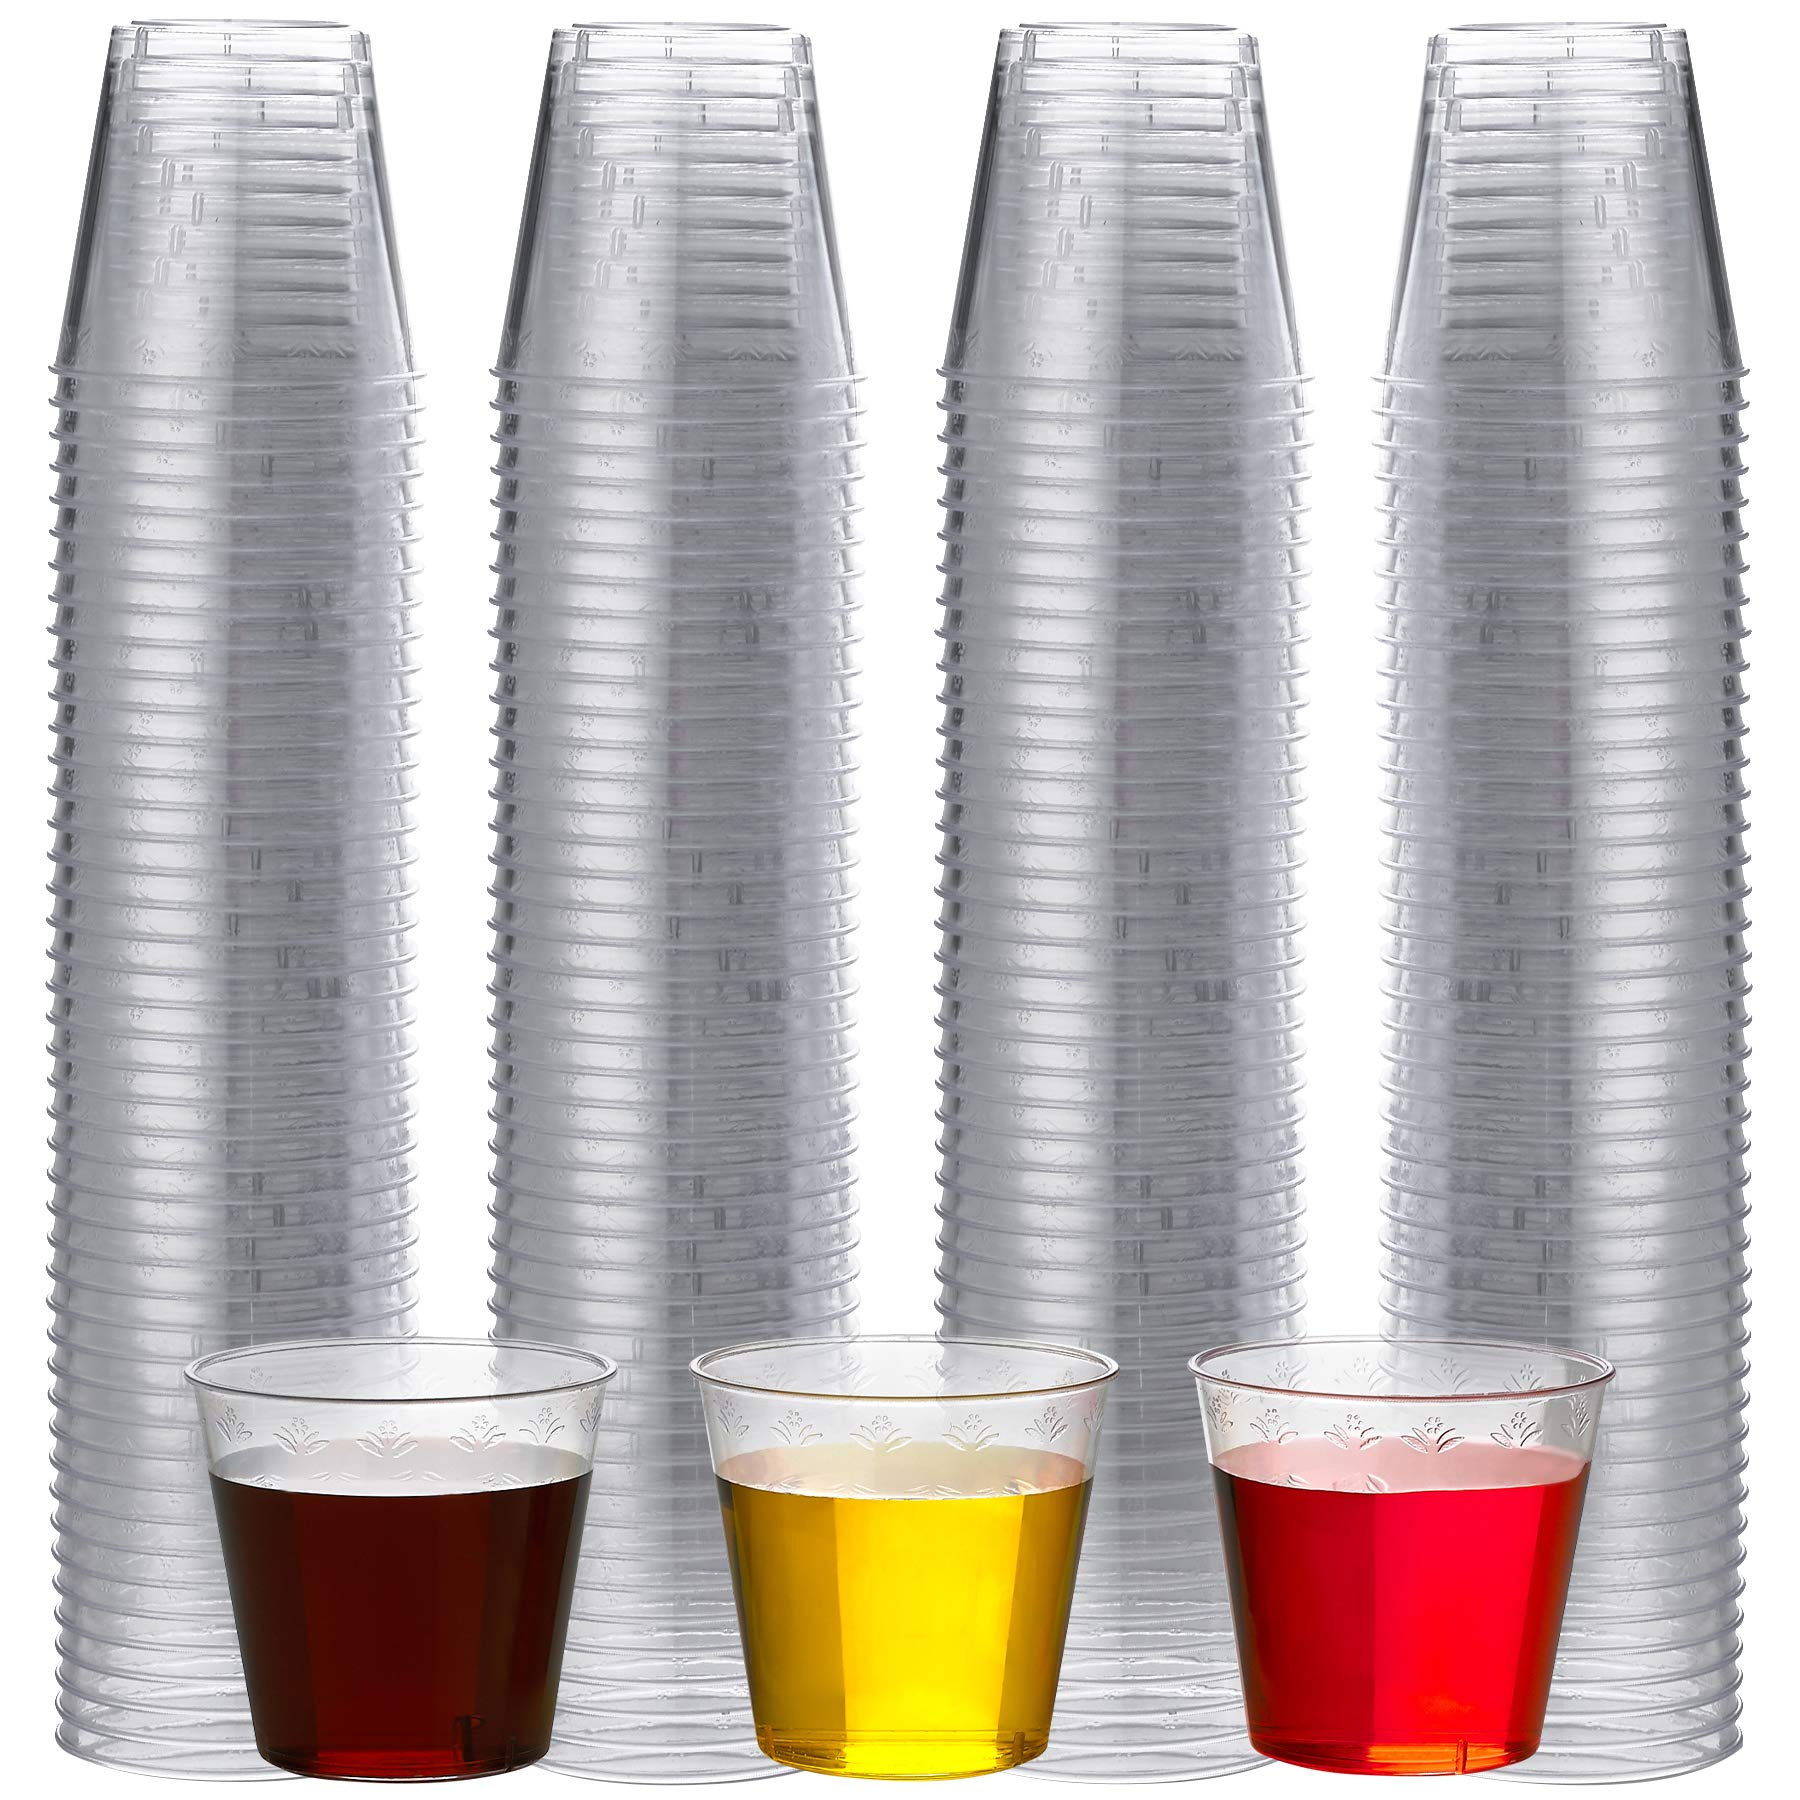 200 Hard Plastic 1 Oz Shot Cups - Disposable Clear Shot Glasses In Bulk, Premium Quality, For Jello Shots, Tasting, Mini Desserts, Weddings, Dinners, And Party's by Bedwina